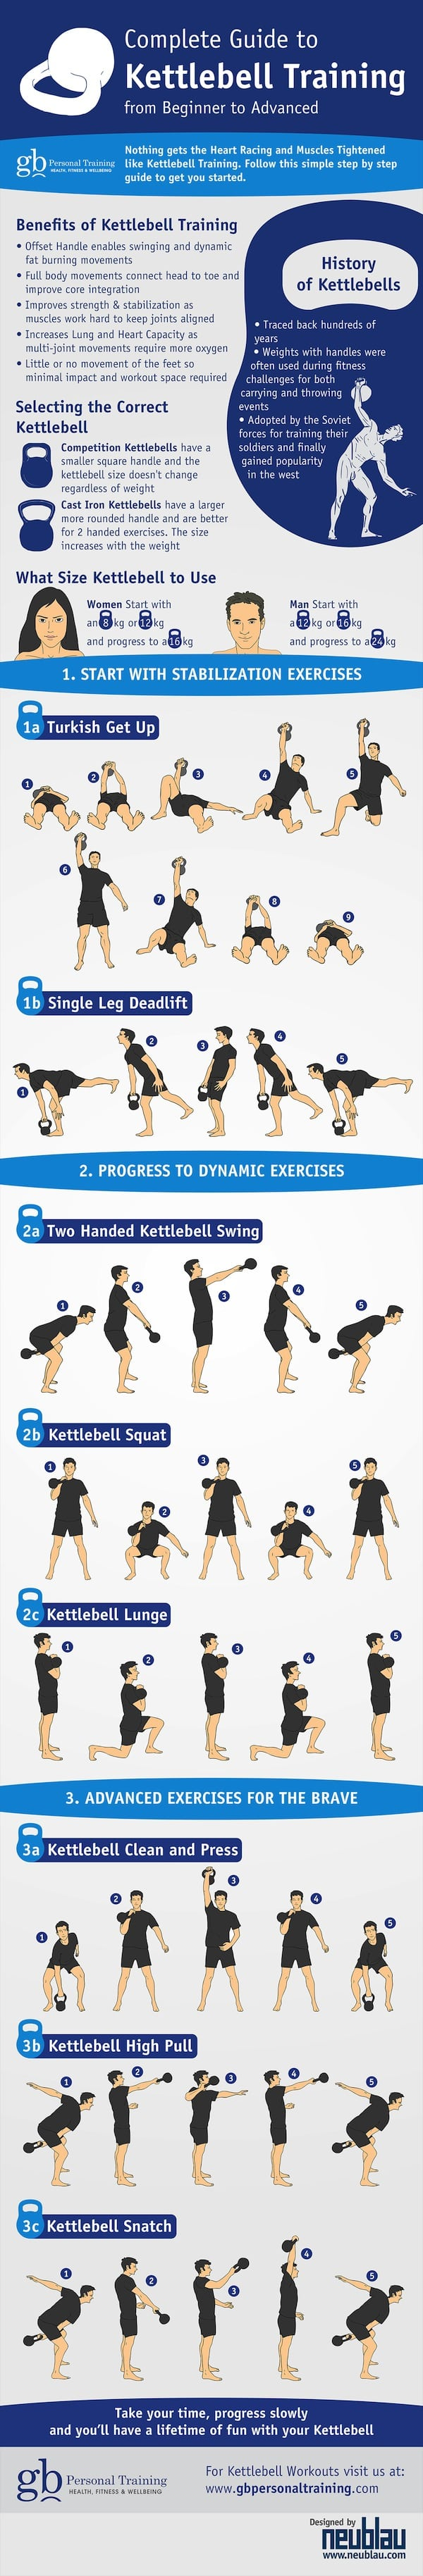 Guide to Kettlebell Training